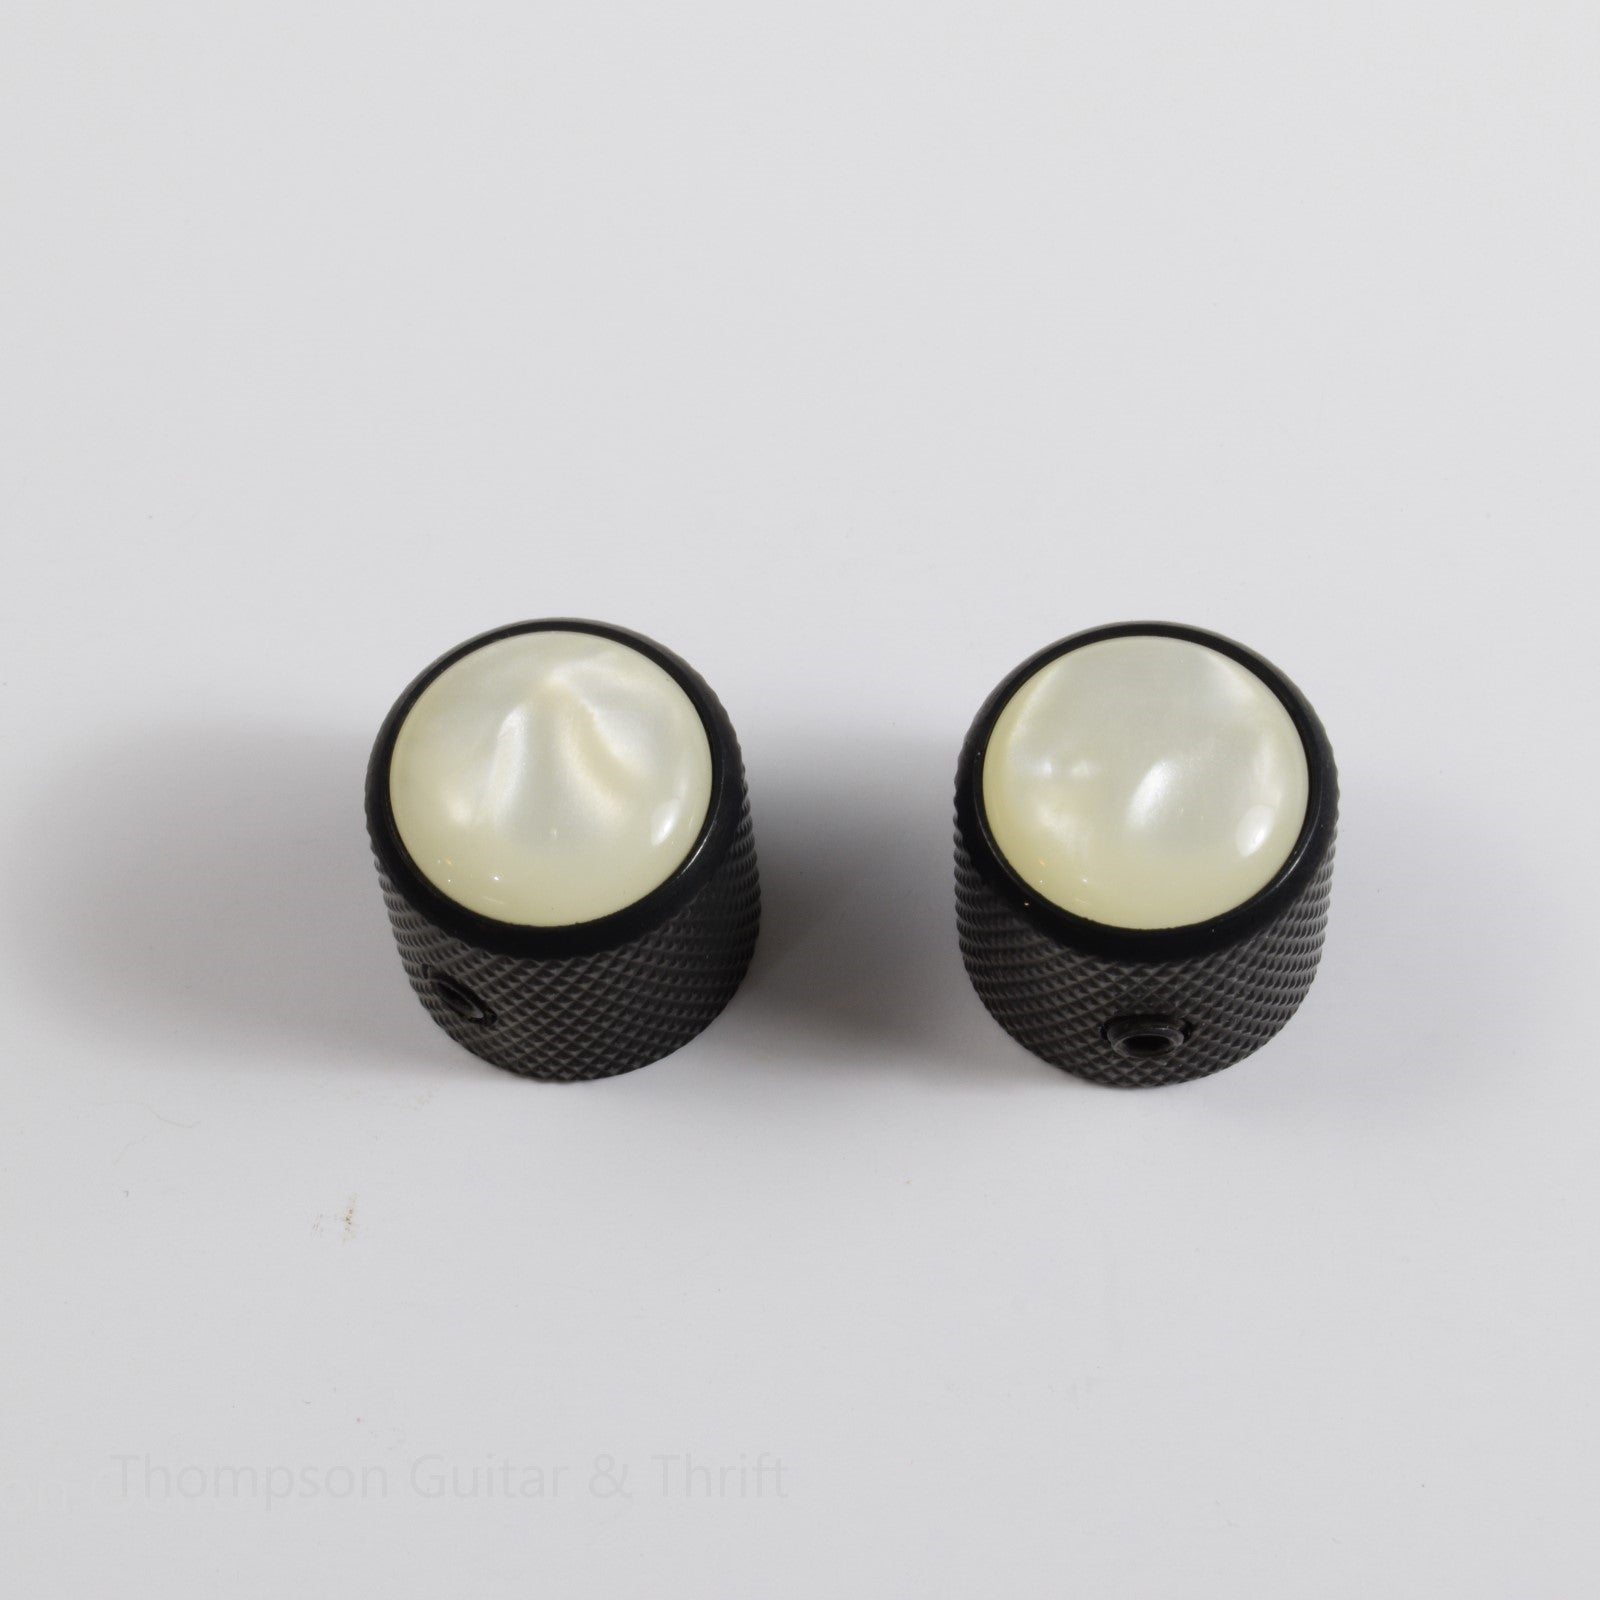 Set of 2 Black Tele Knobs with White Pearl Top